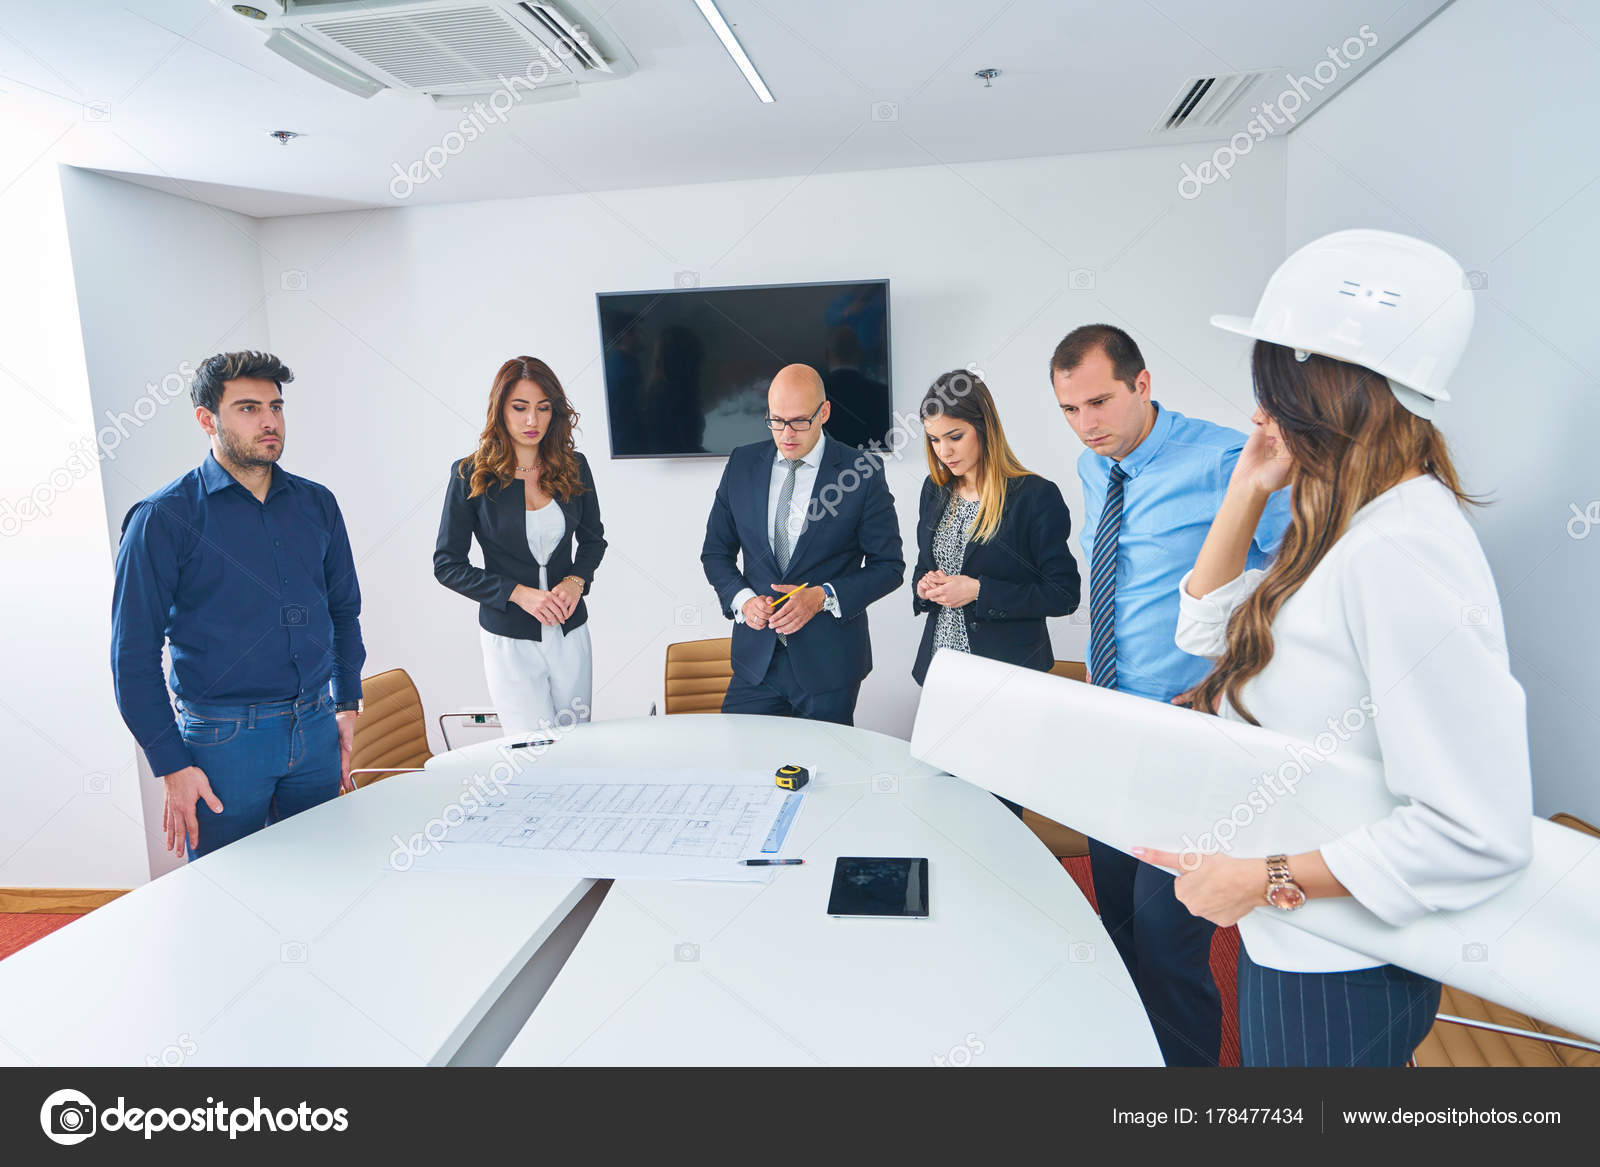 Business people group meeting construction engineer architect business people group meeting construction engineer architect looking building blueprint stock photo malvernweather Images